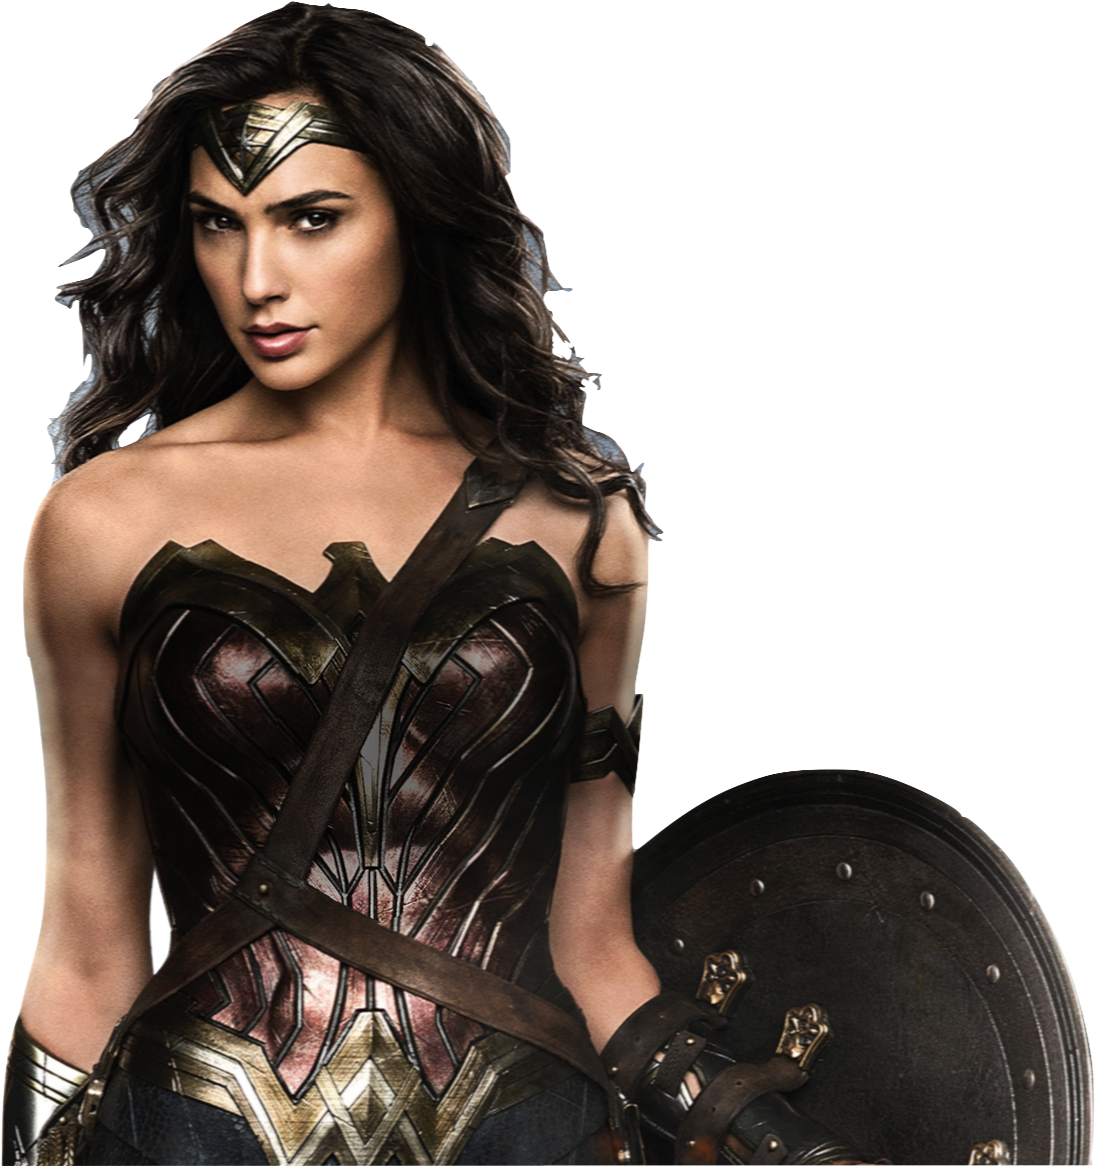 Gal Gadot as Wonder Woman with shield 2 PNG by nickelbackloverxoxox - Gal Gadot PNG